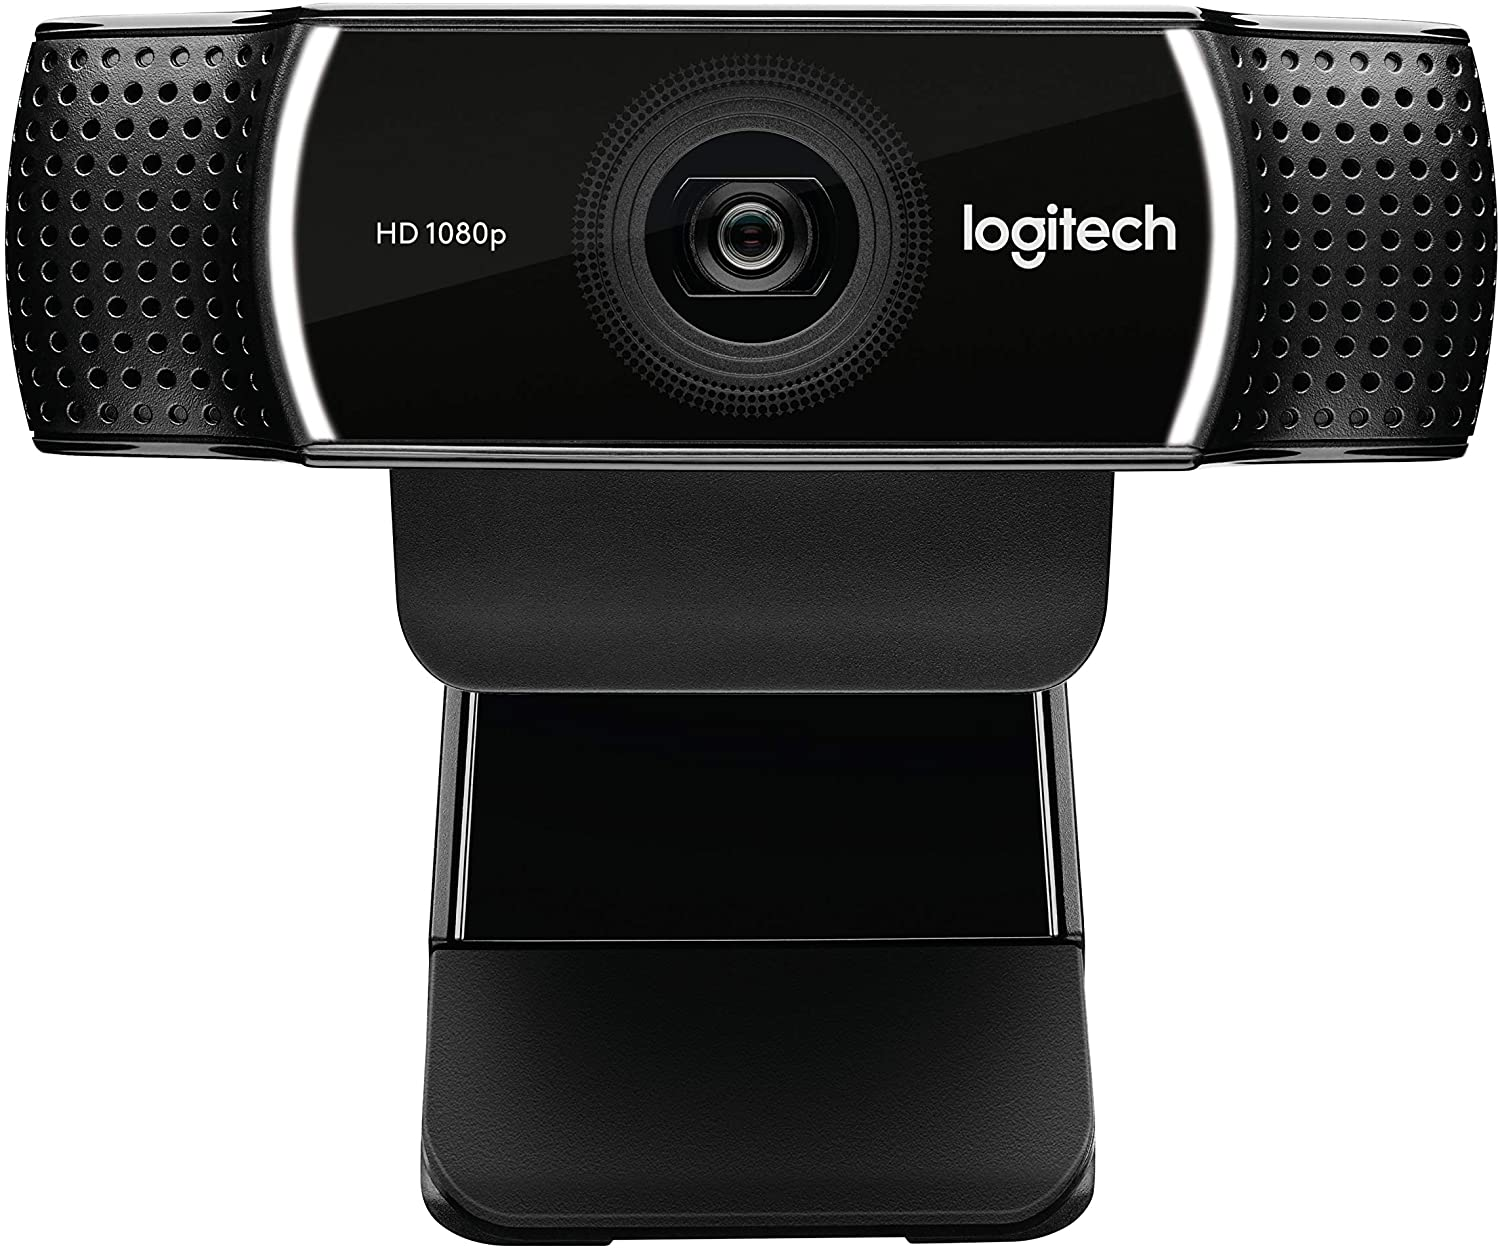 Amazon Com Logitech 1080p Pro Stream Webcam For Hd Video Streaming And Recording At 1080p 30fps Computers Accessories